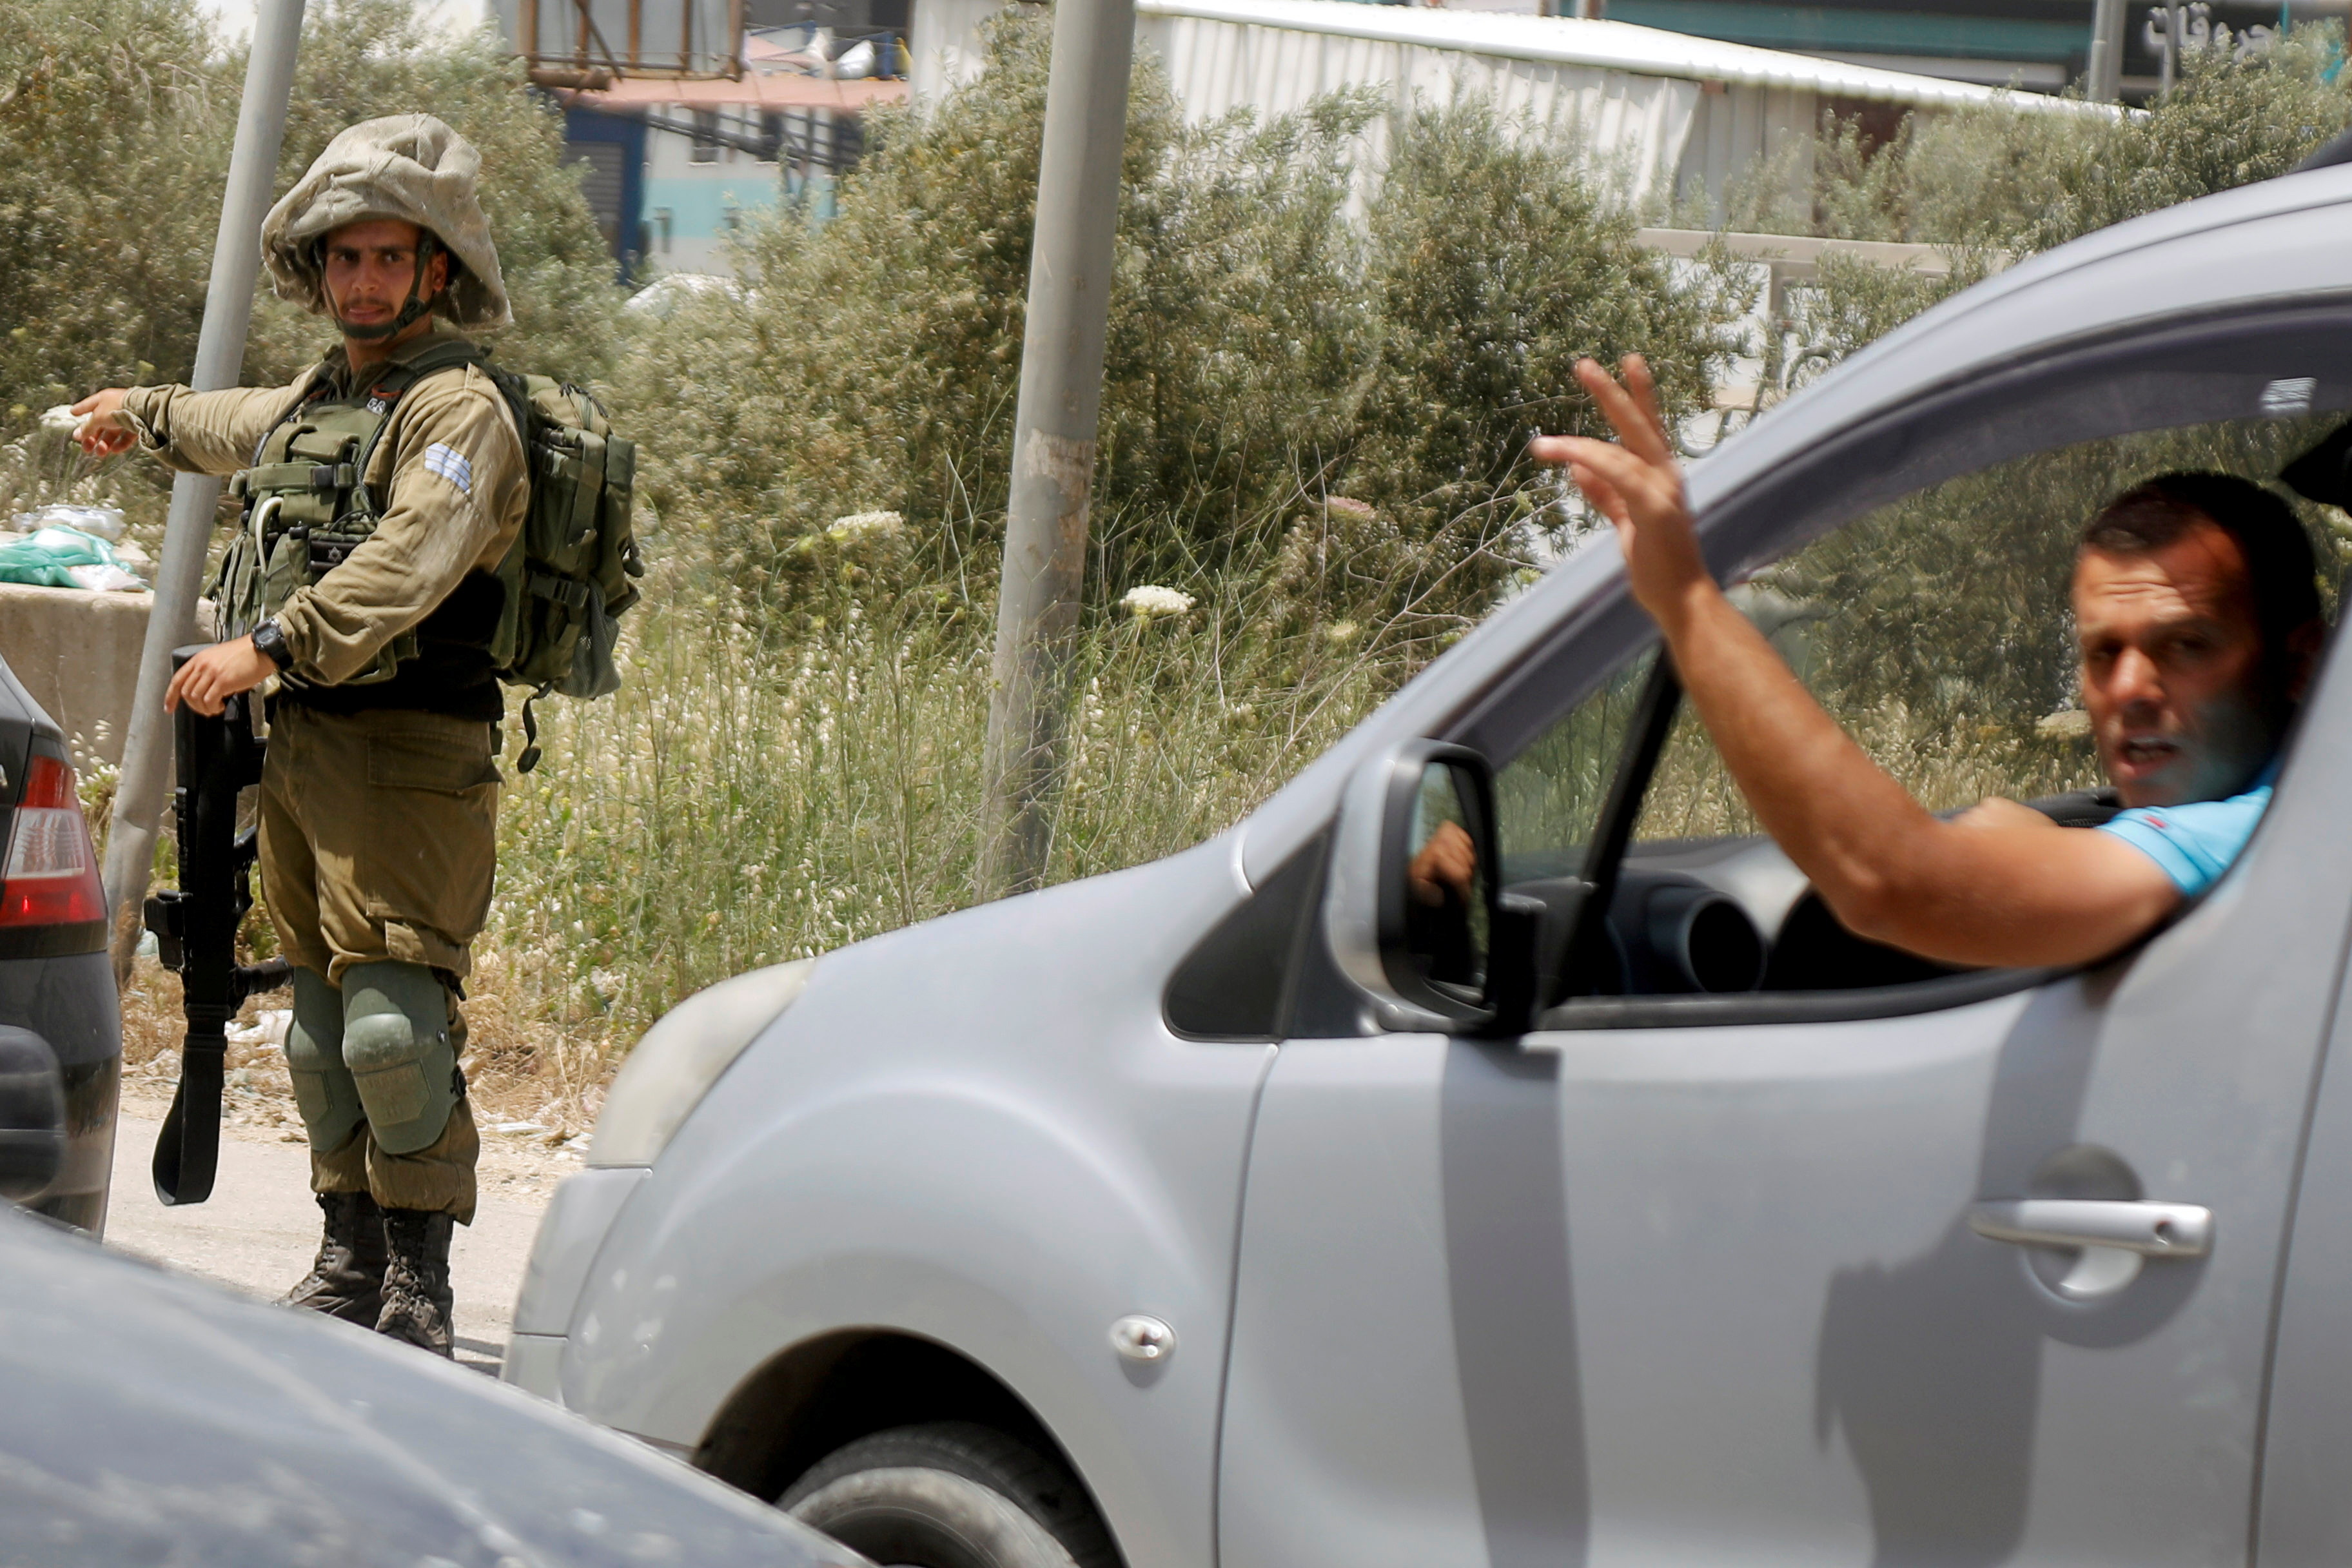 An Israeli soldier gestures during a search operation in the Palestinian town of Beita near Nablus in the Israeli-occupied West Bank May 5, 2021. REUTERS/Raneen Sawafta